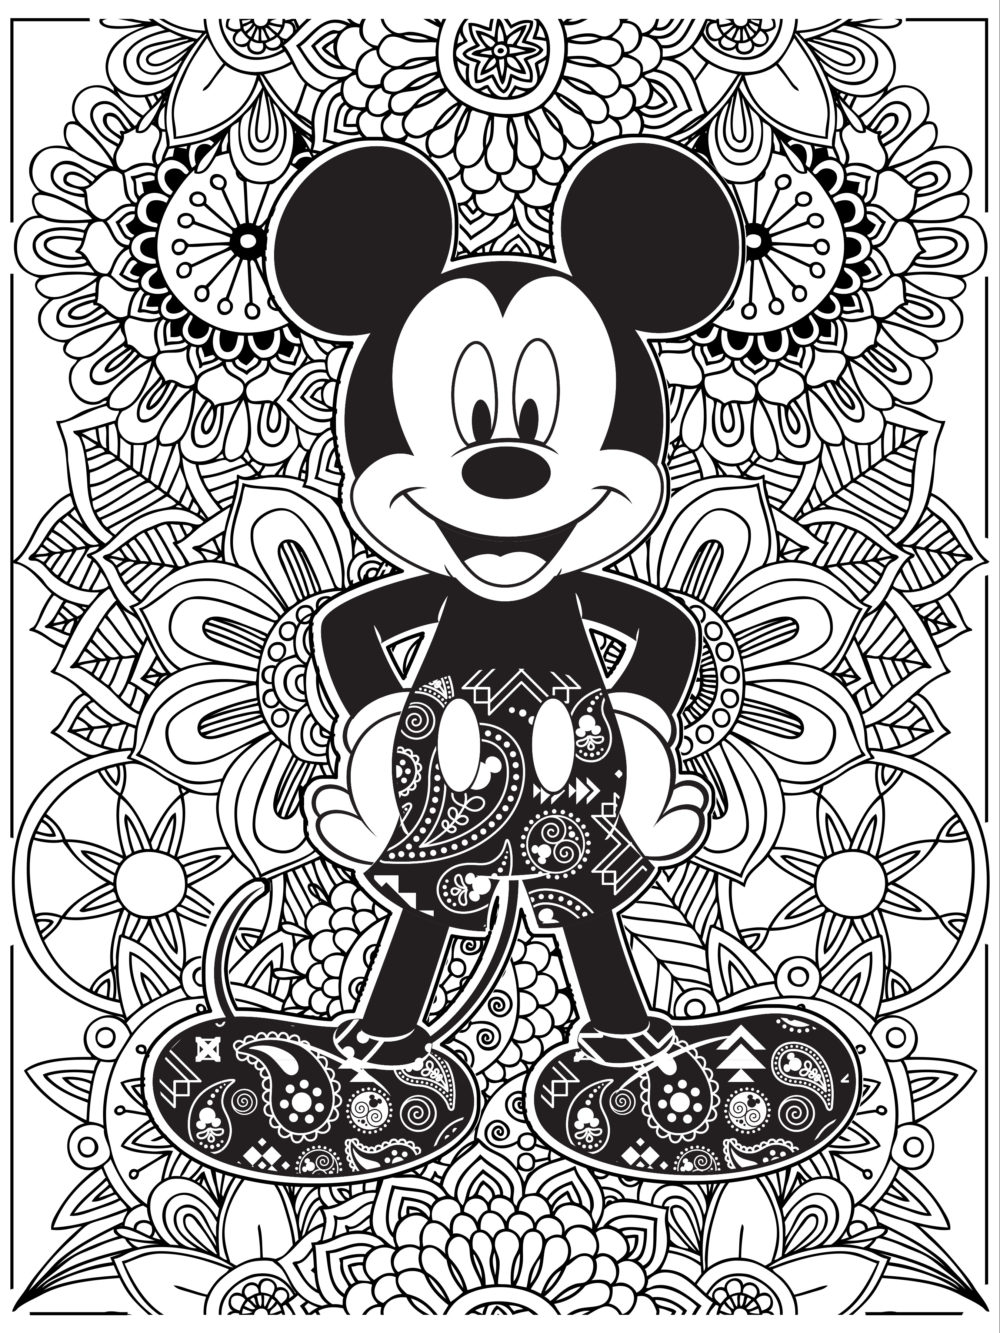 Coloring Disney Pages Celebrate National Coloring Book Day With Disney Style